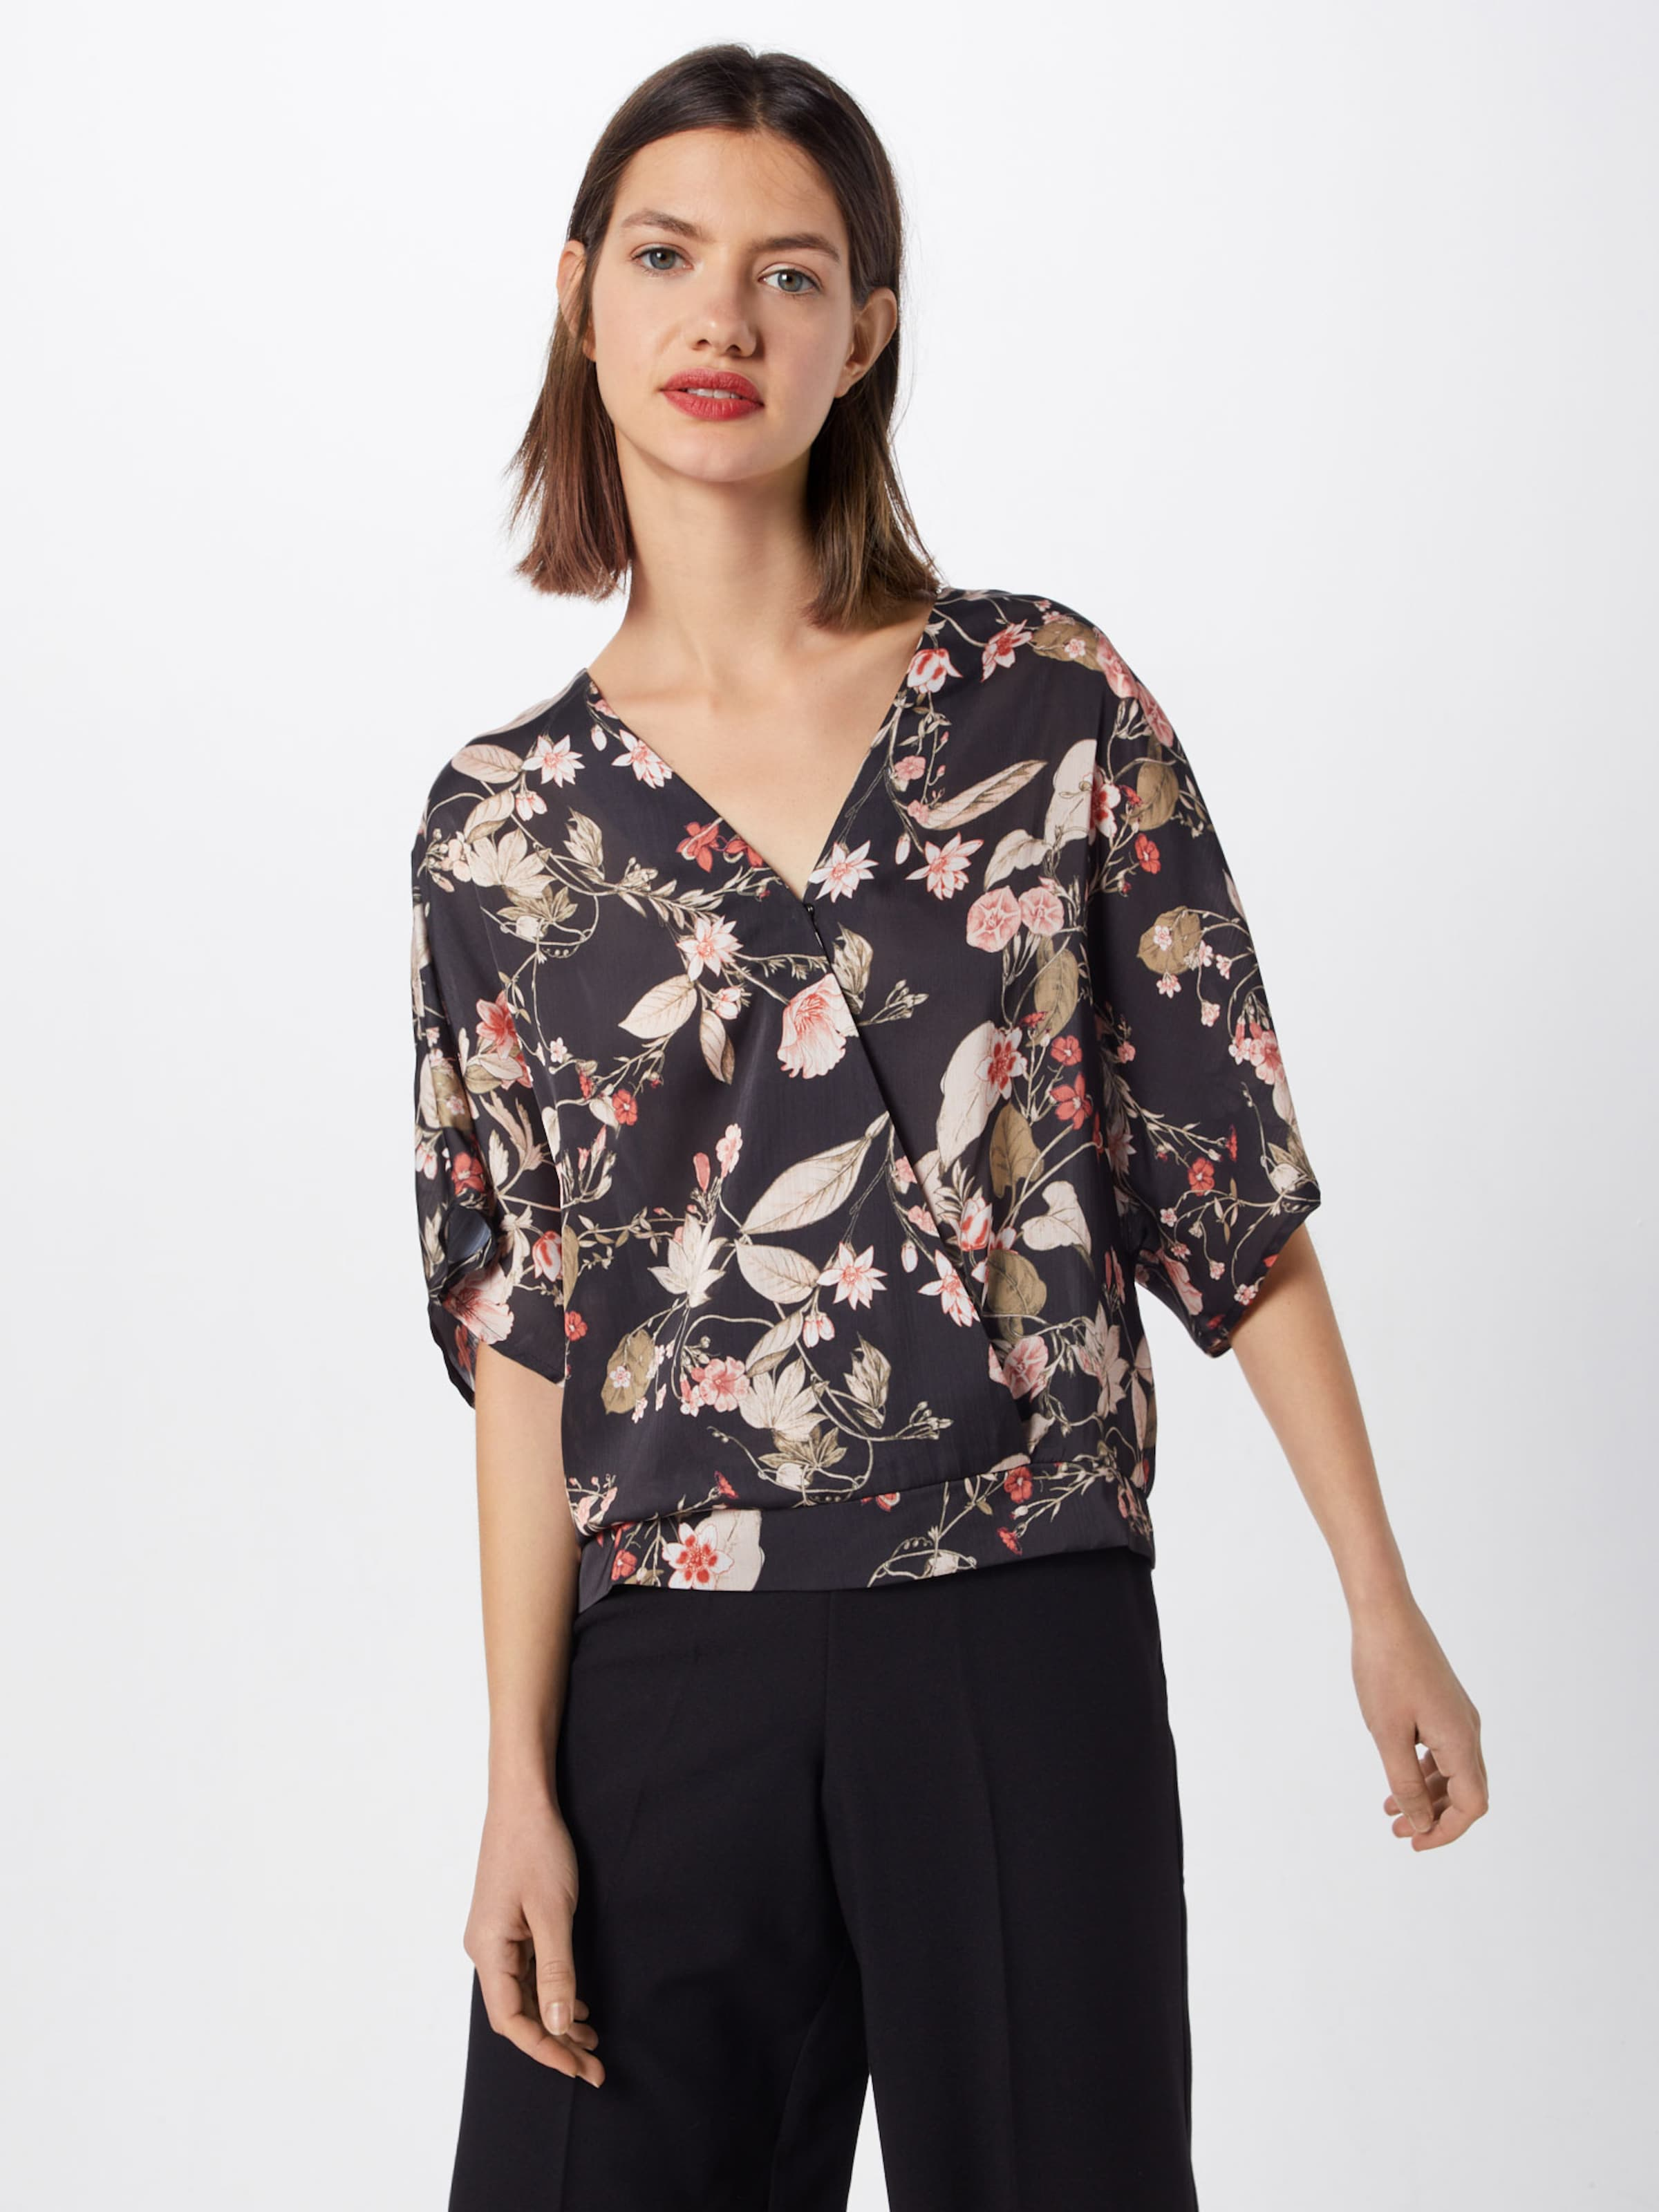 About In Bluse You CremeSchwarz 'agnes' qUzpSMV